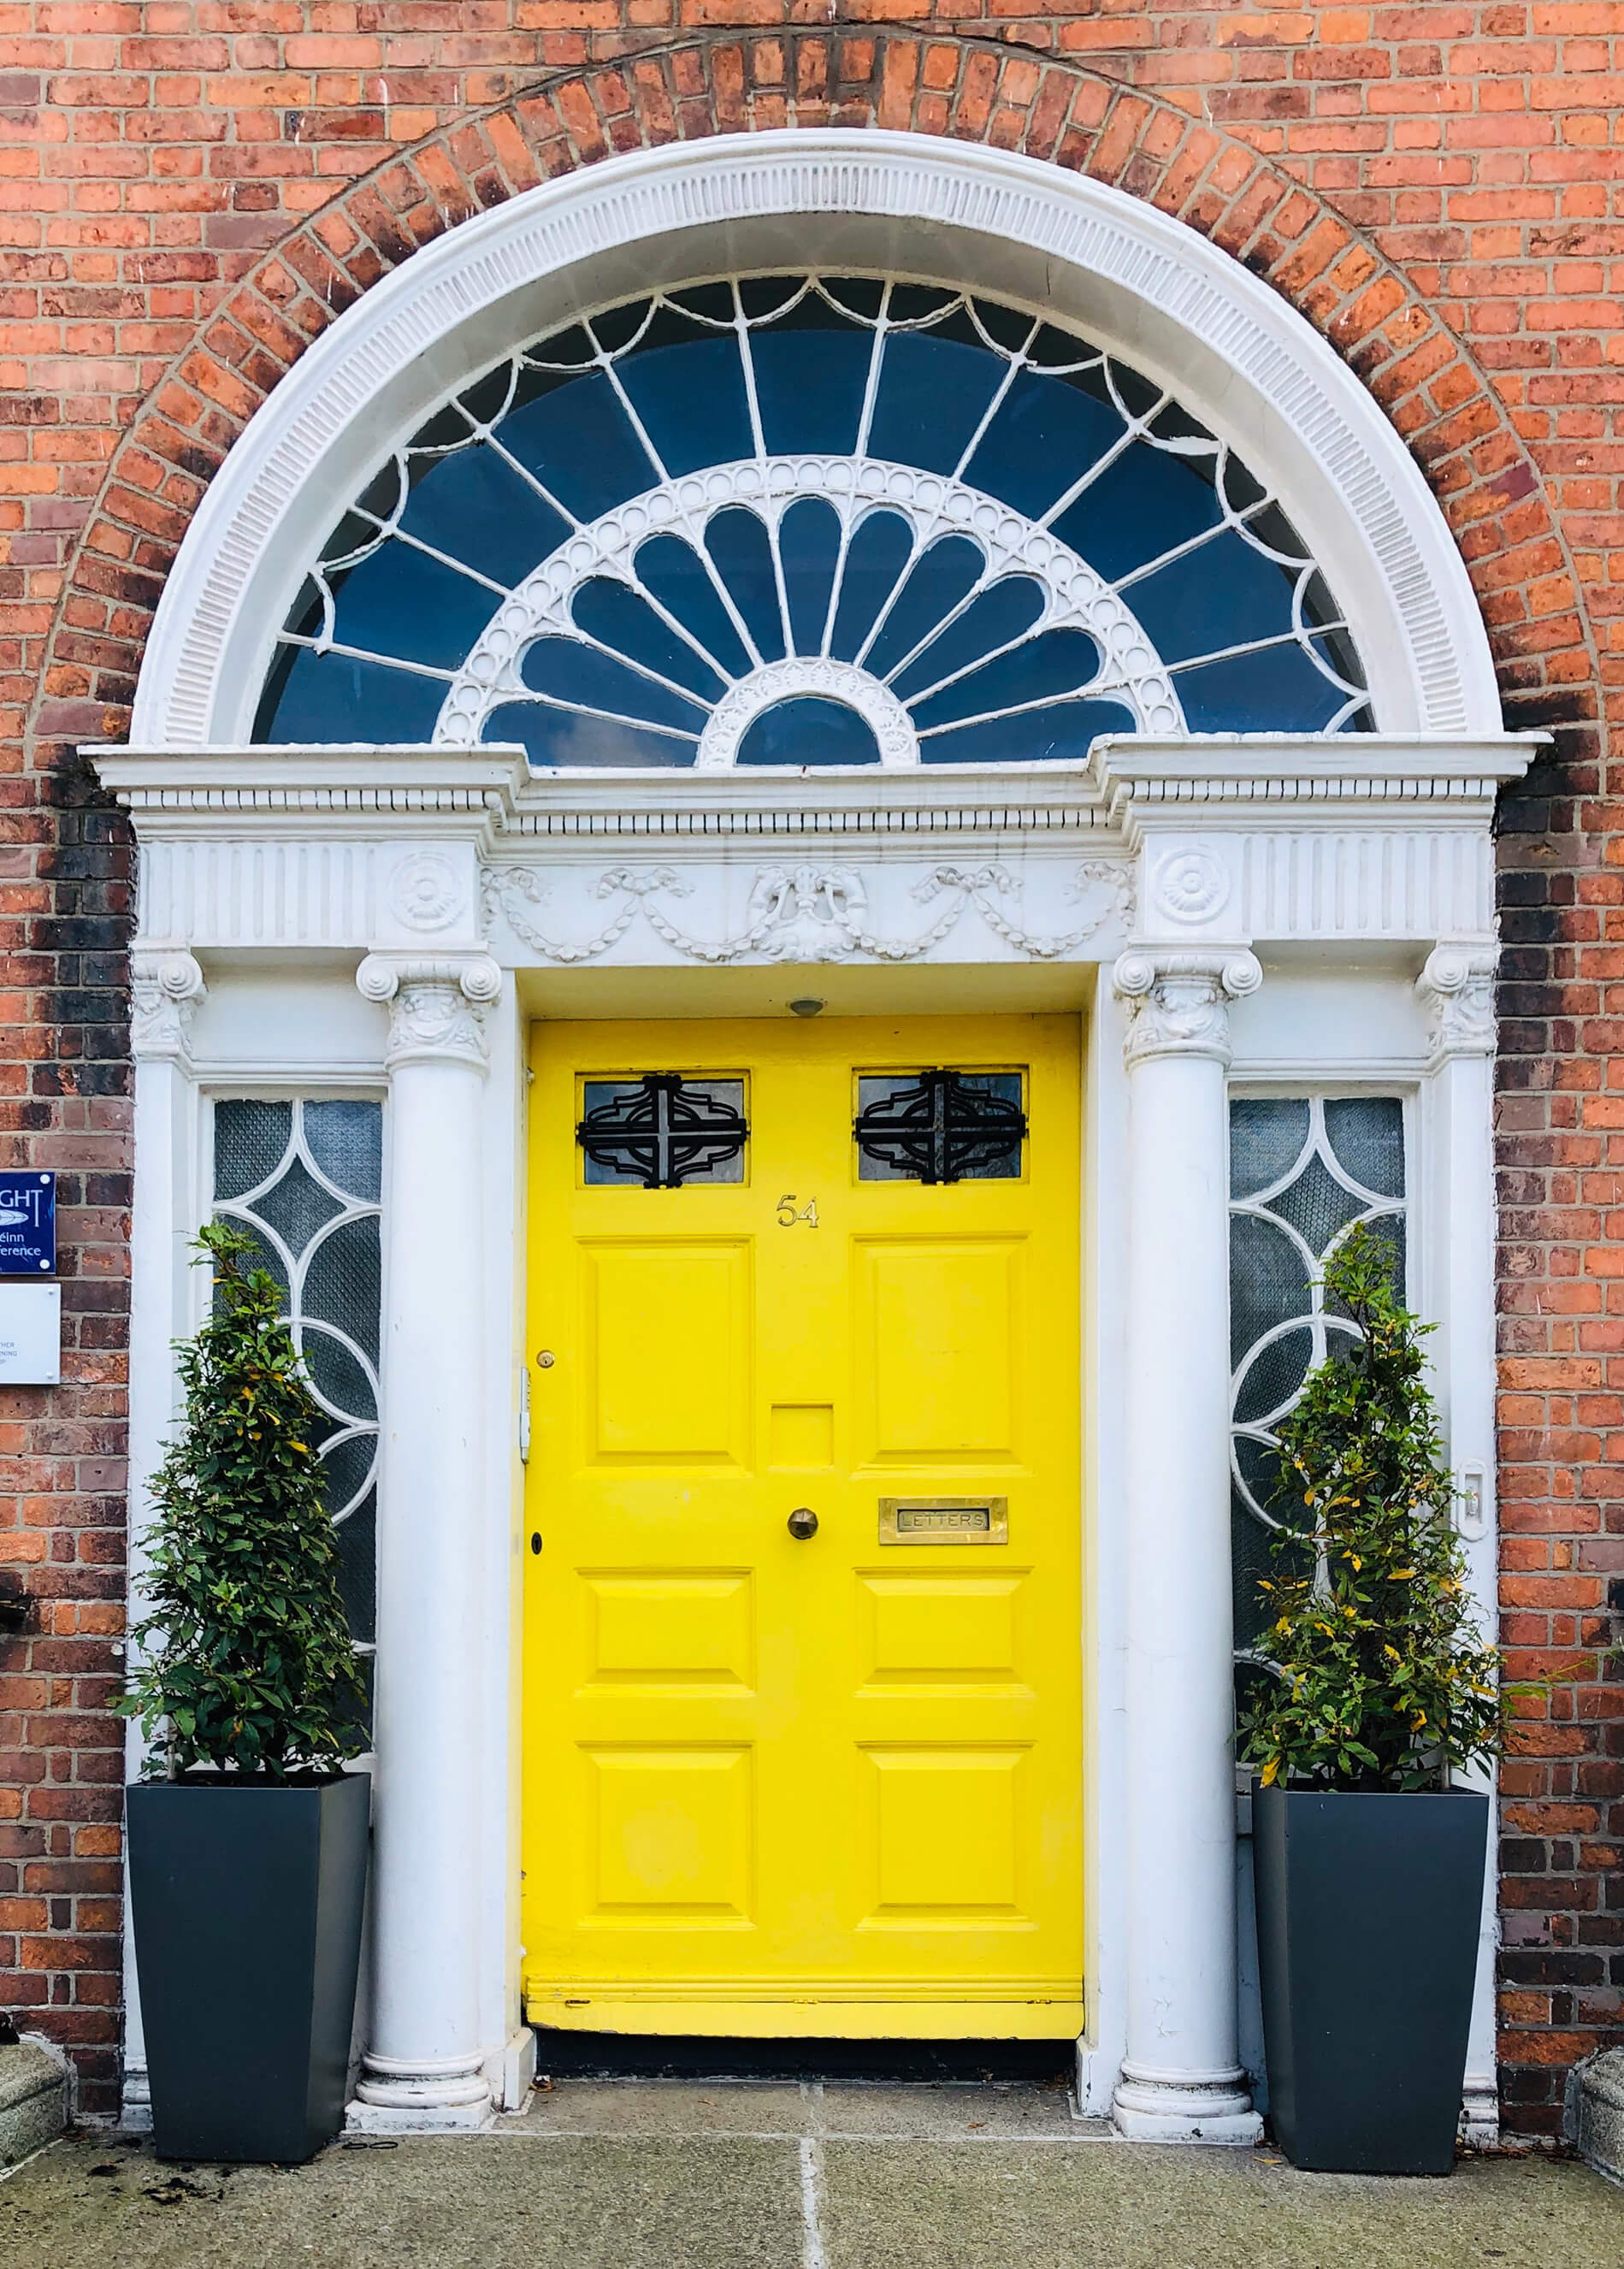 Dipped in the sun – the eclectic doors of Dublin | Dublin | STIRworld